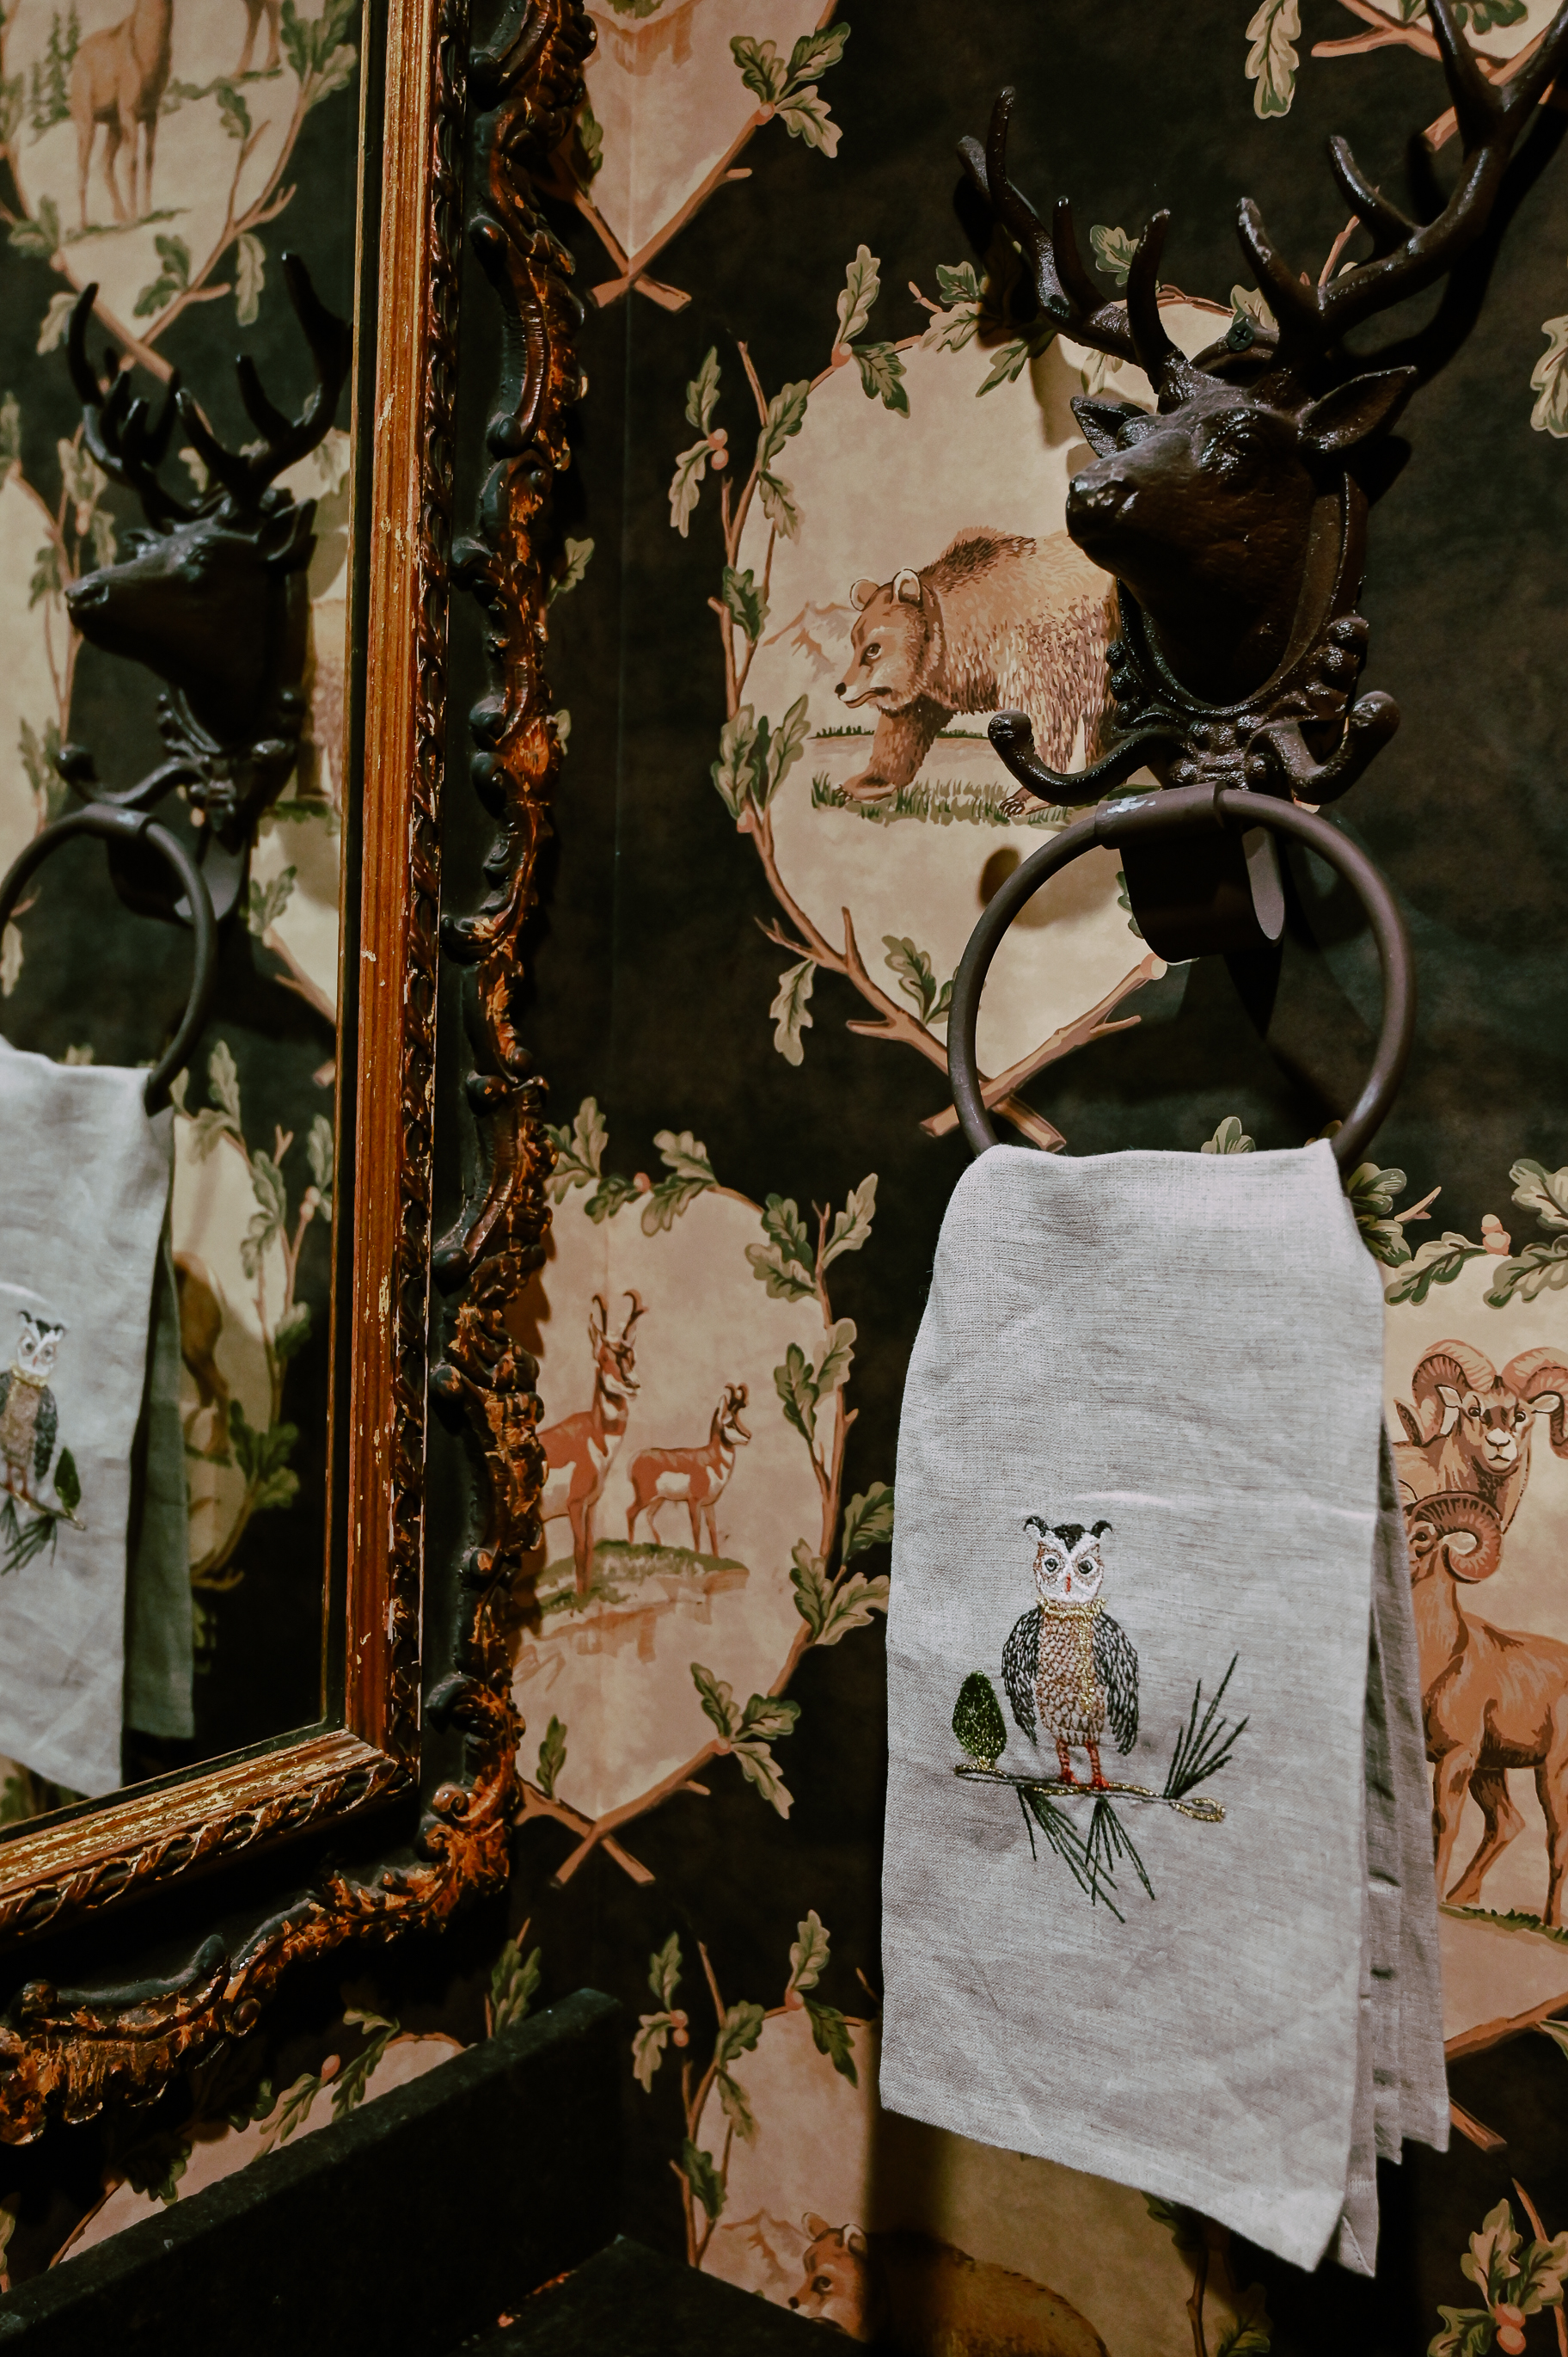 Coral & Tusk is my favorite brand for linen hand towels in a powder room. The designs are wildlife and nature embroidered on unbleached natural linen.